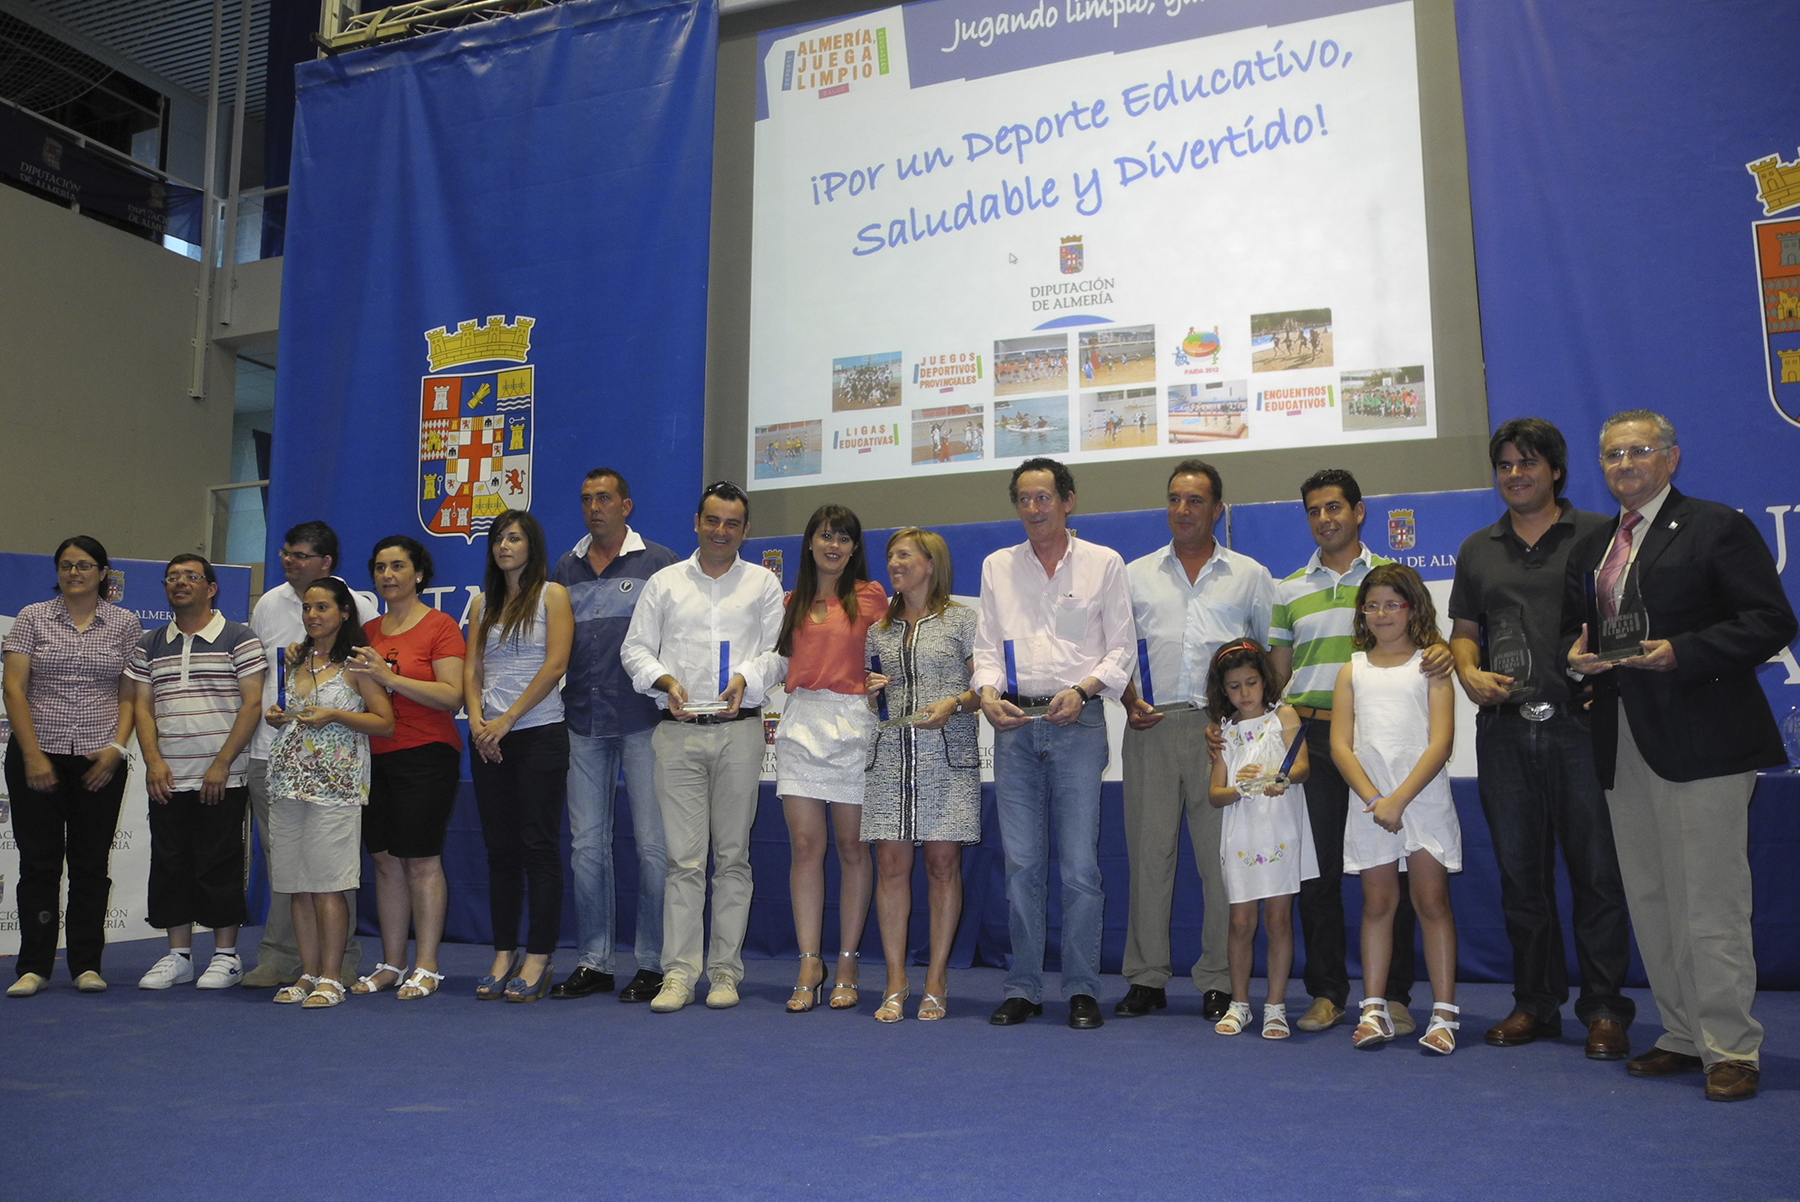 Premios y Galardones Almería Juega Limpio 2012